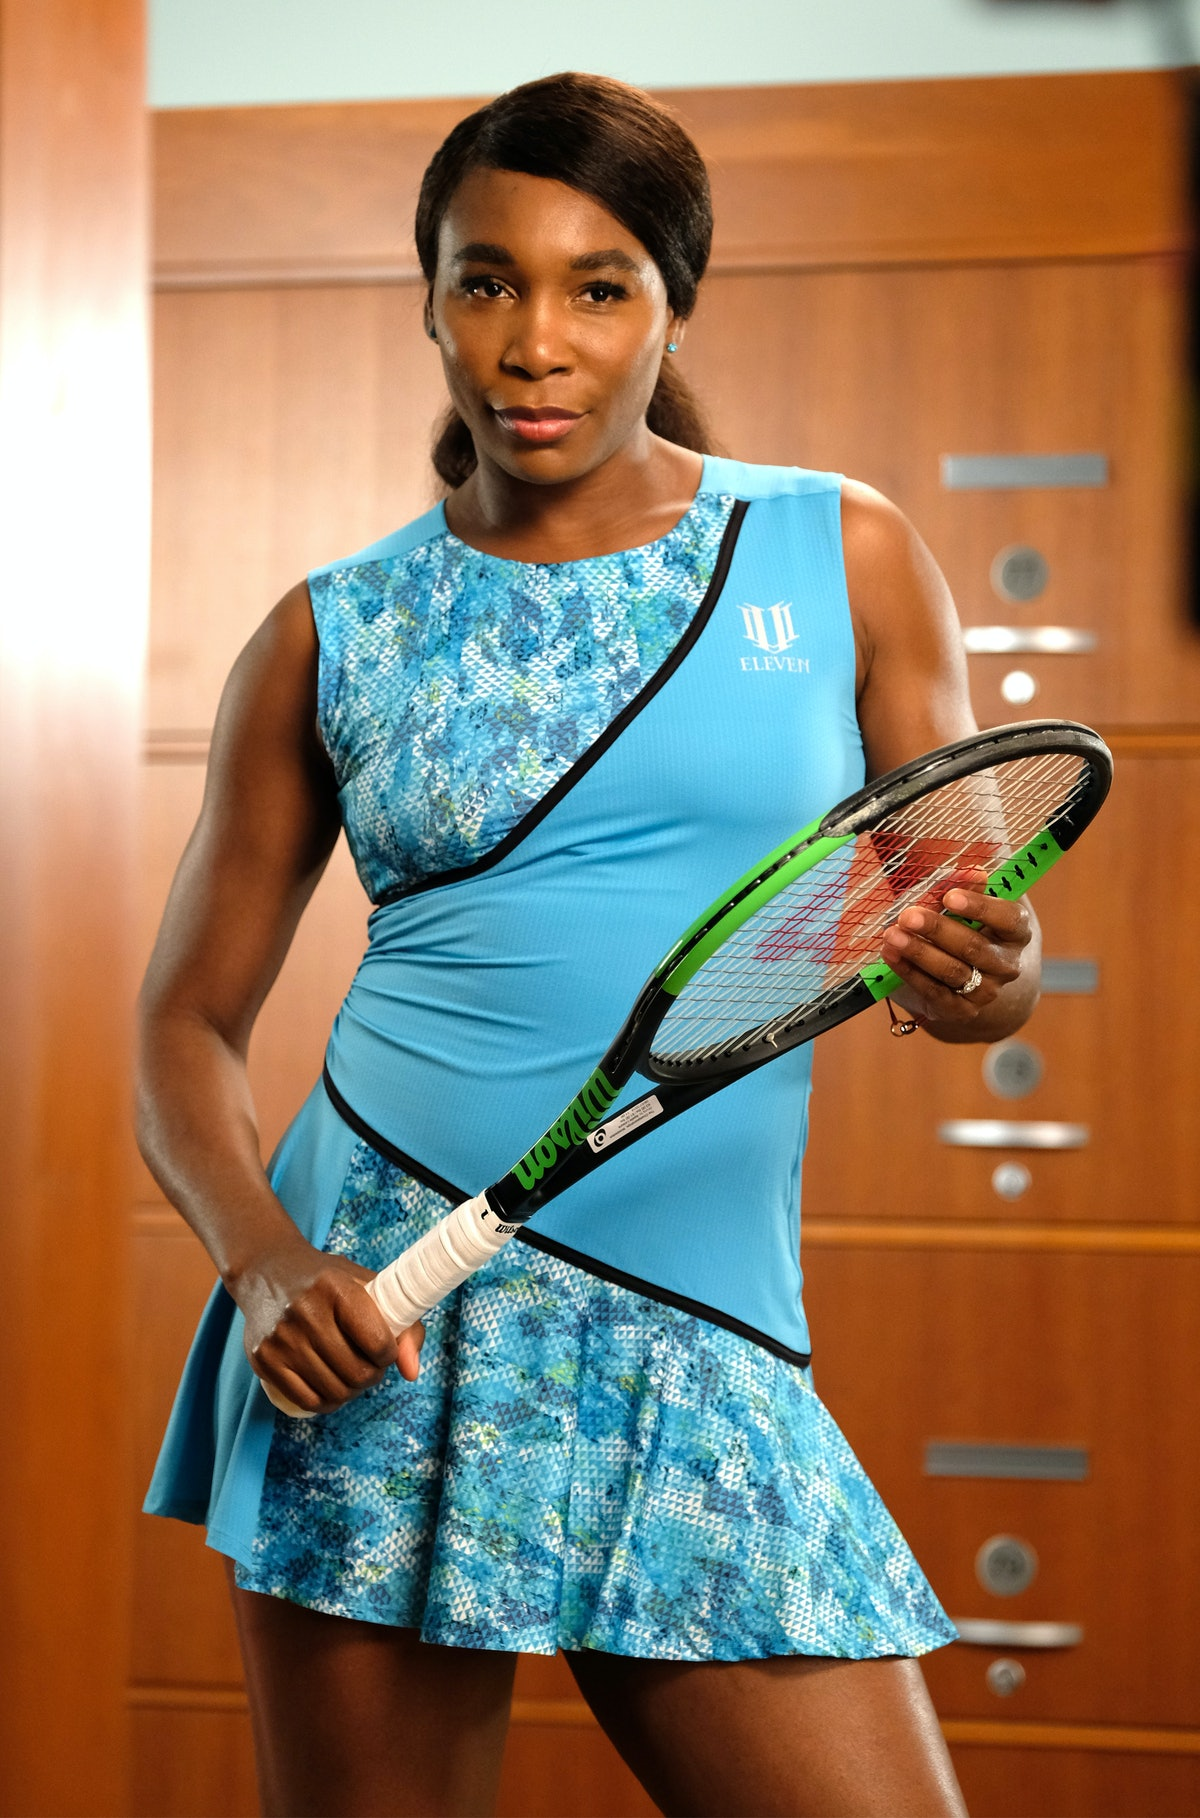 Tennis Star Venus Williams On Set With American Express Ahead of the 2018 US Open